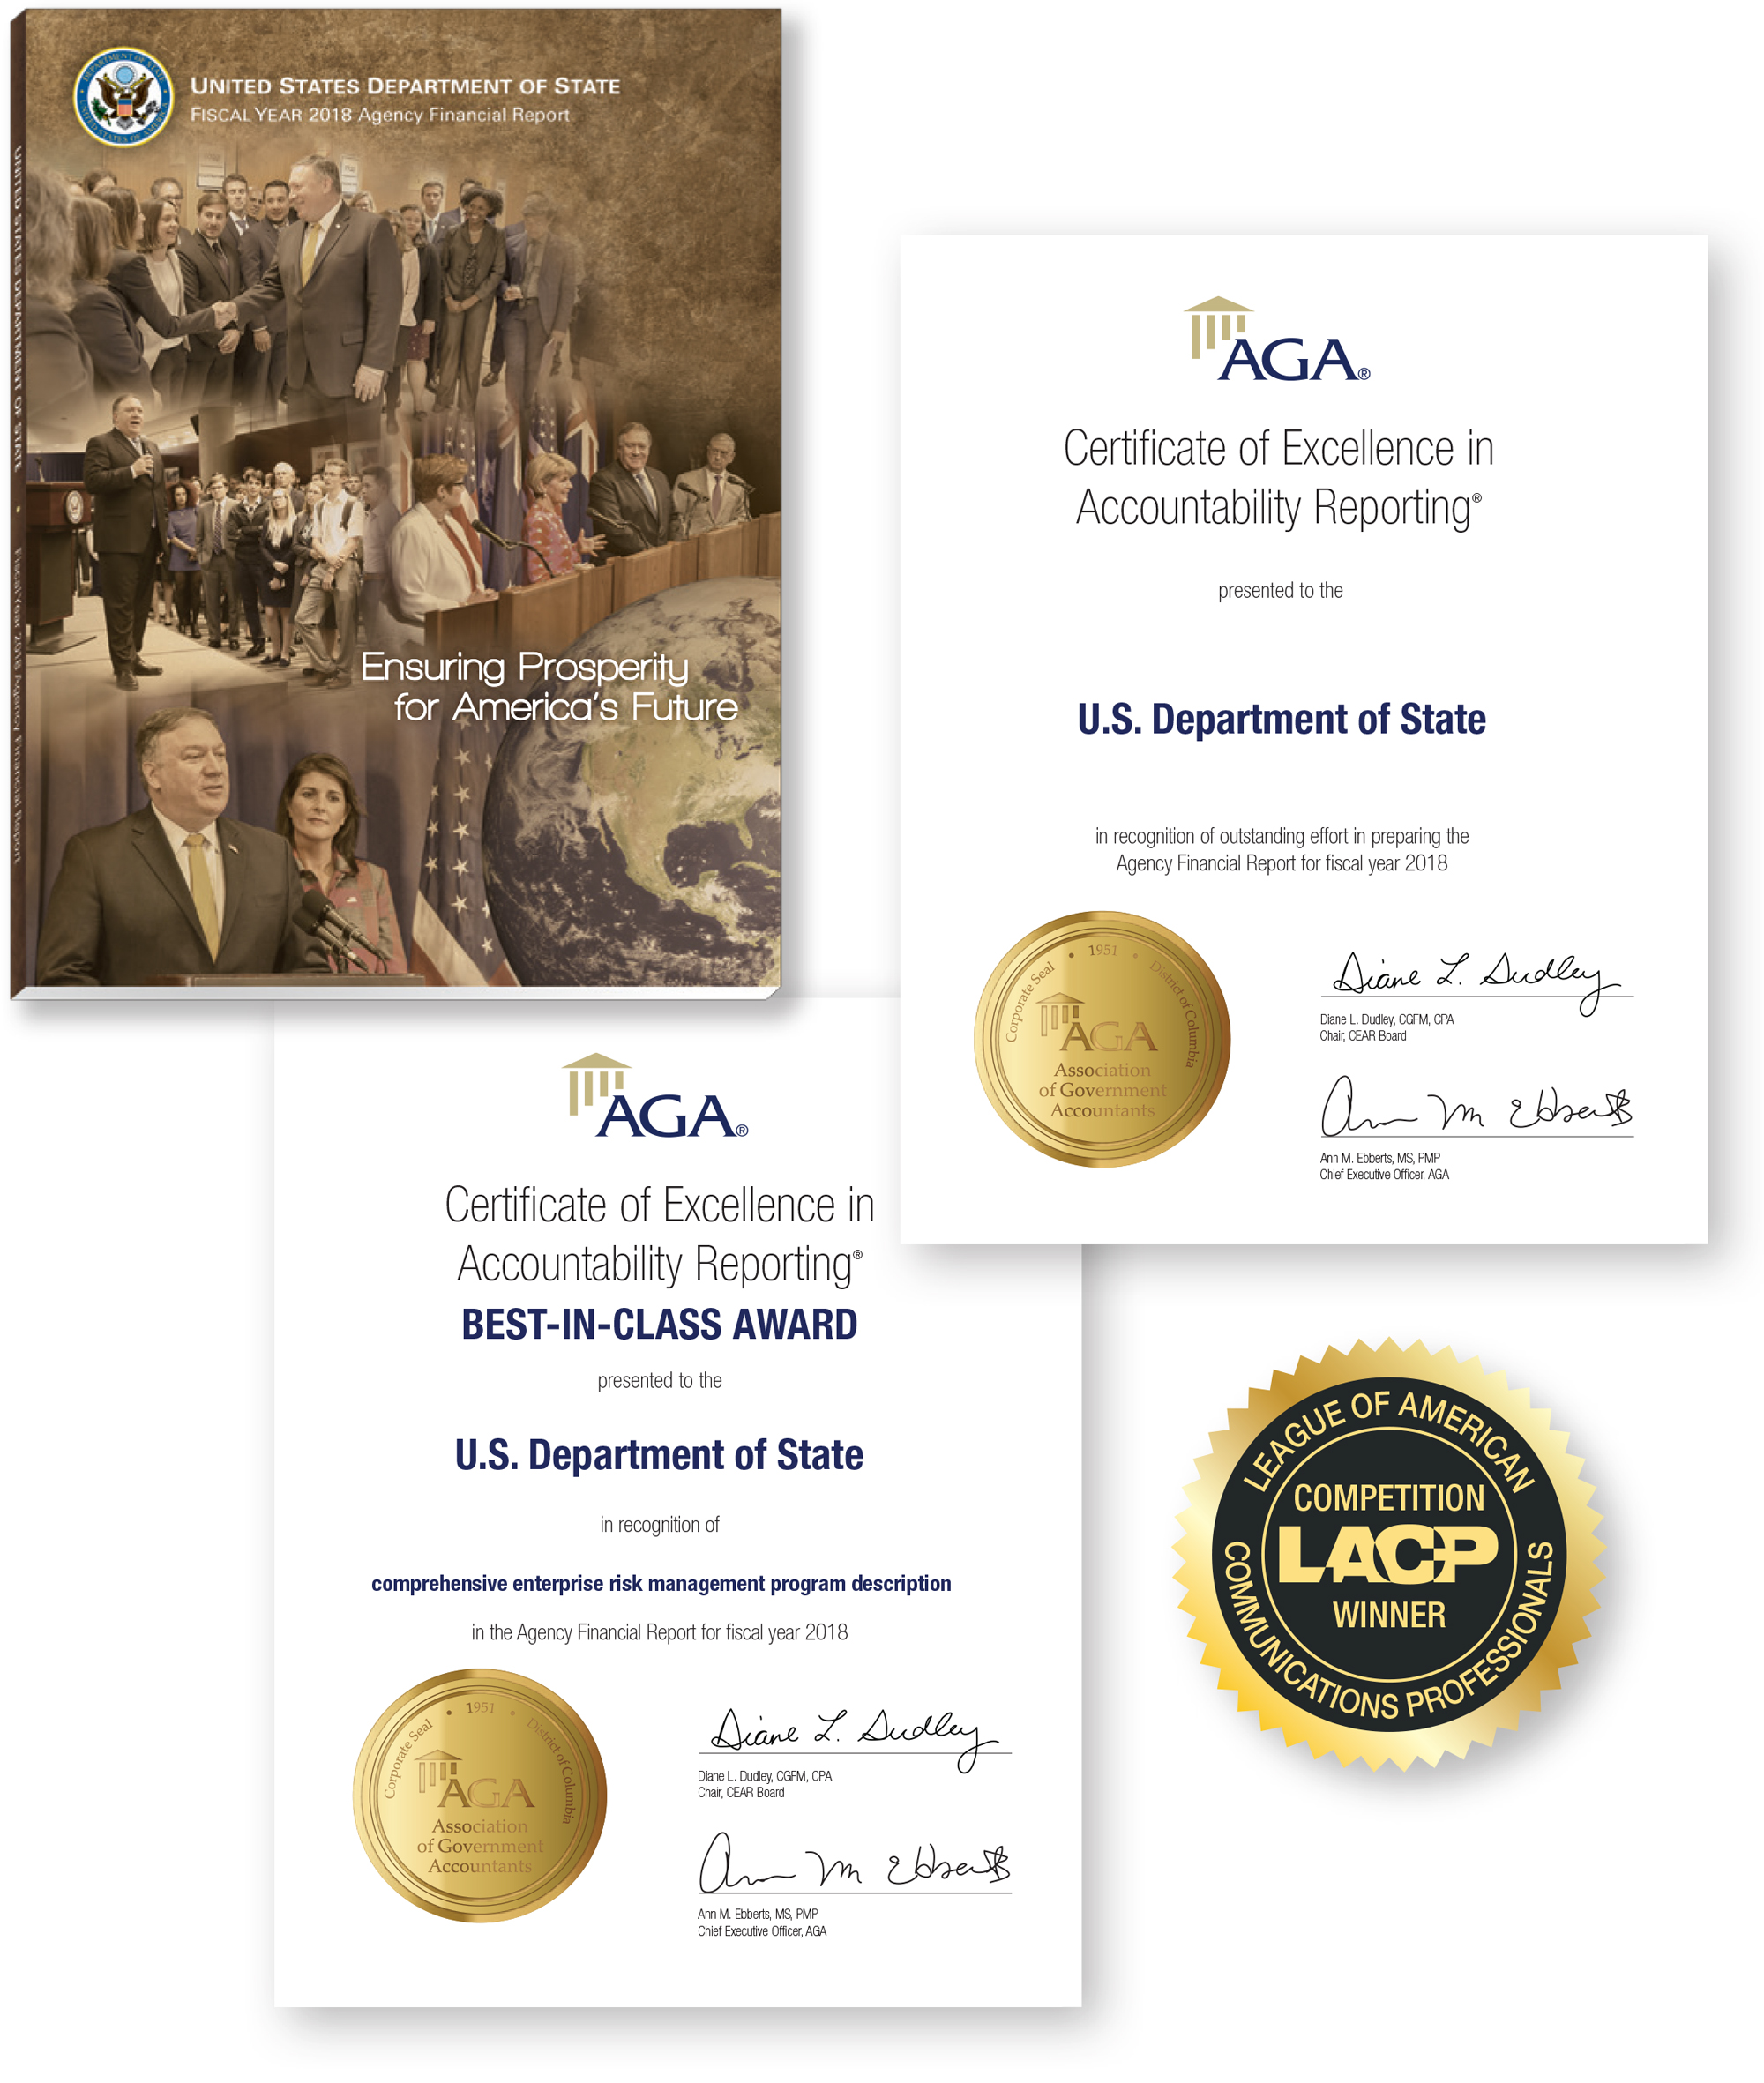 Photo showing the U.S. Department of State Fiscal Year 2018 Agency Financial Report cover, the Certificate of Excellence in Accountability Reporting (CEAR) award and the CEAR Best-in-Class in recognition of comprehensive enterprise risk management program description award presented to the Department of State for its Fiscal Year 2018 Agency Financial Report, and the League of American Communications Professionals Competition Winner seal presented to the Department of State for that report.